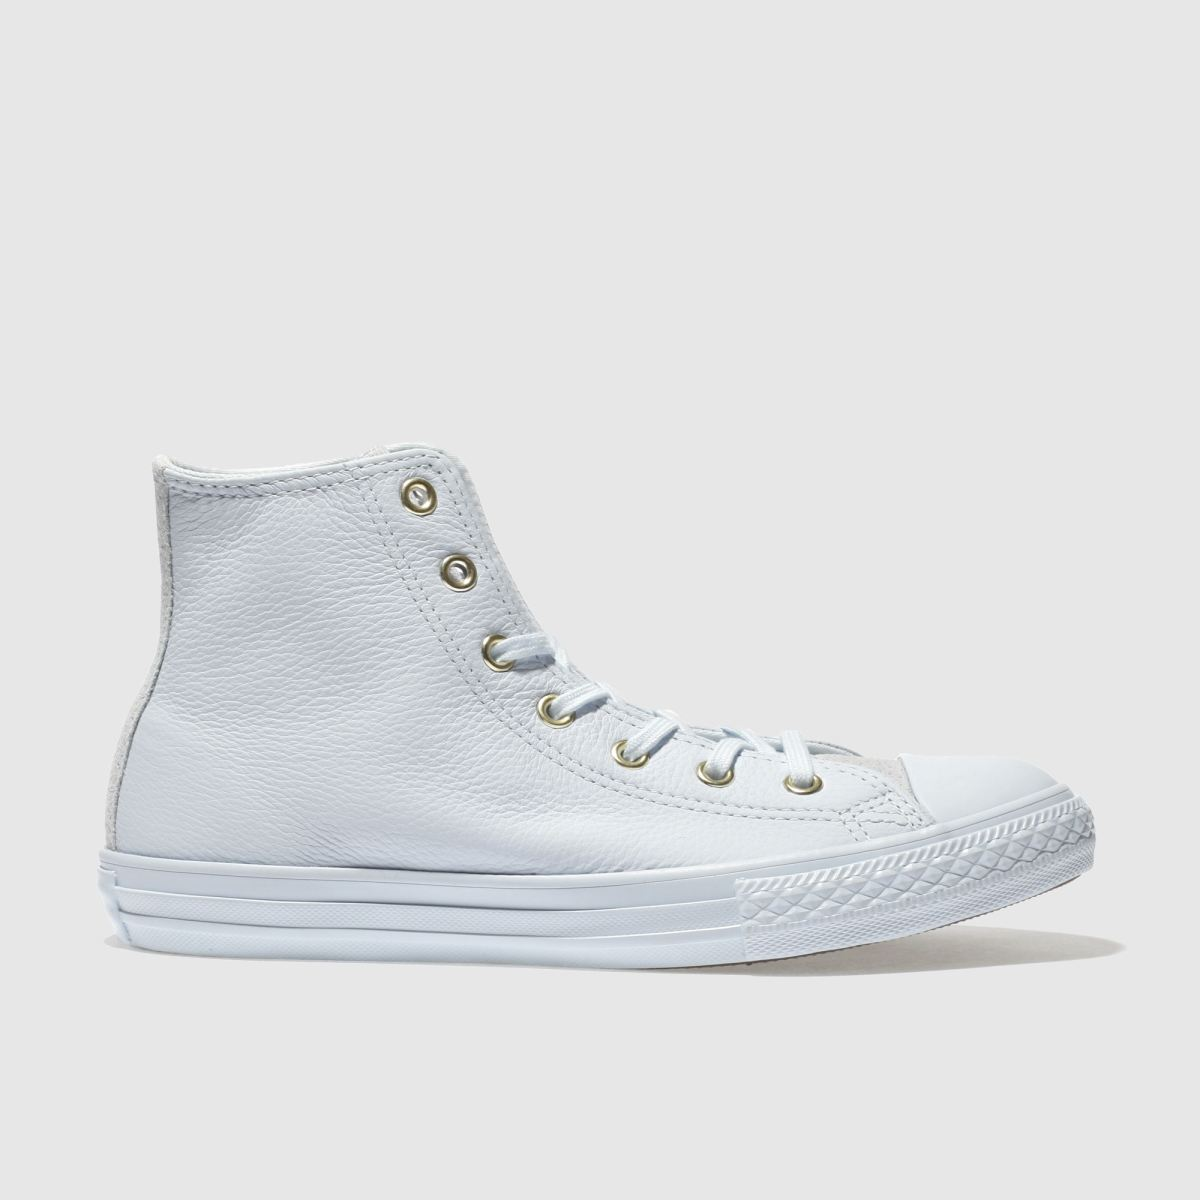 Converse Pale Blue Chuck Taylor All Star Hi Girls Youth Trainers